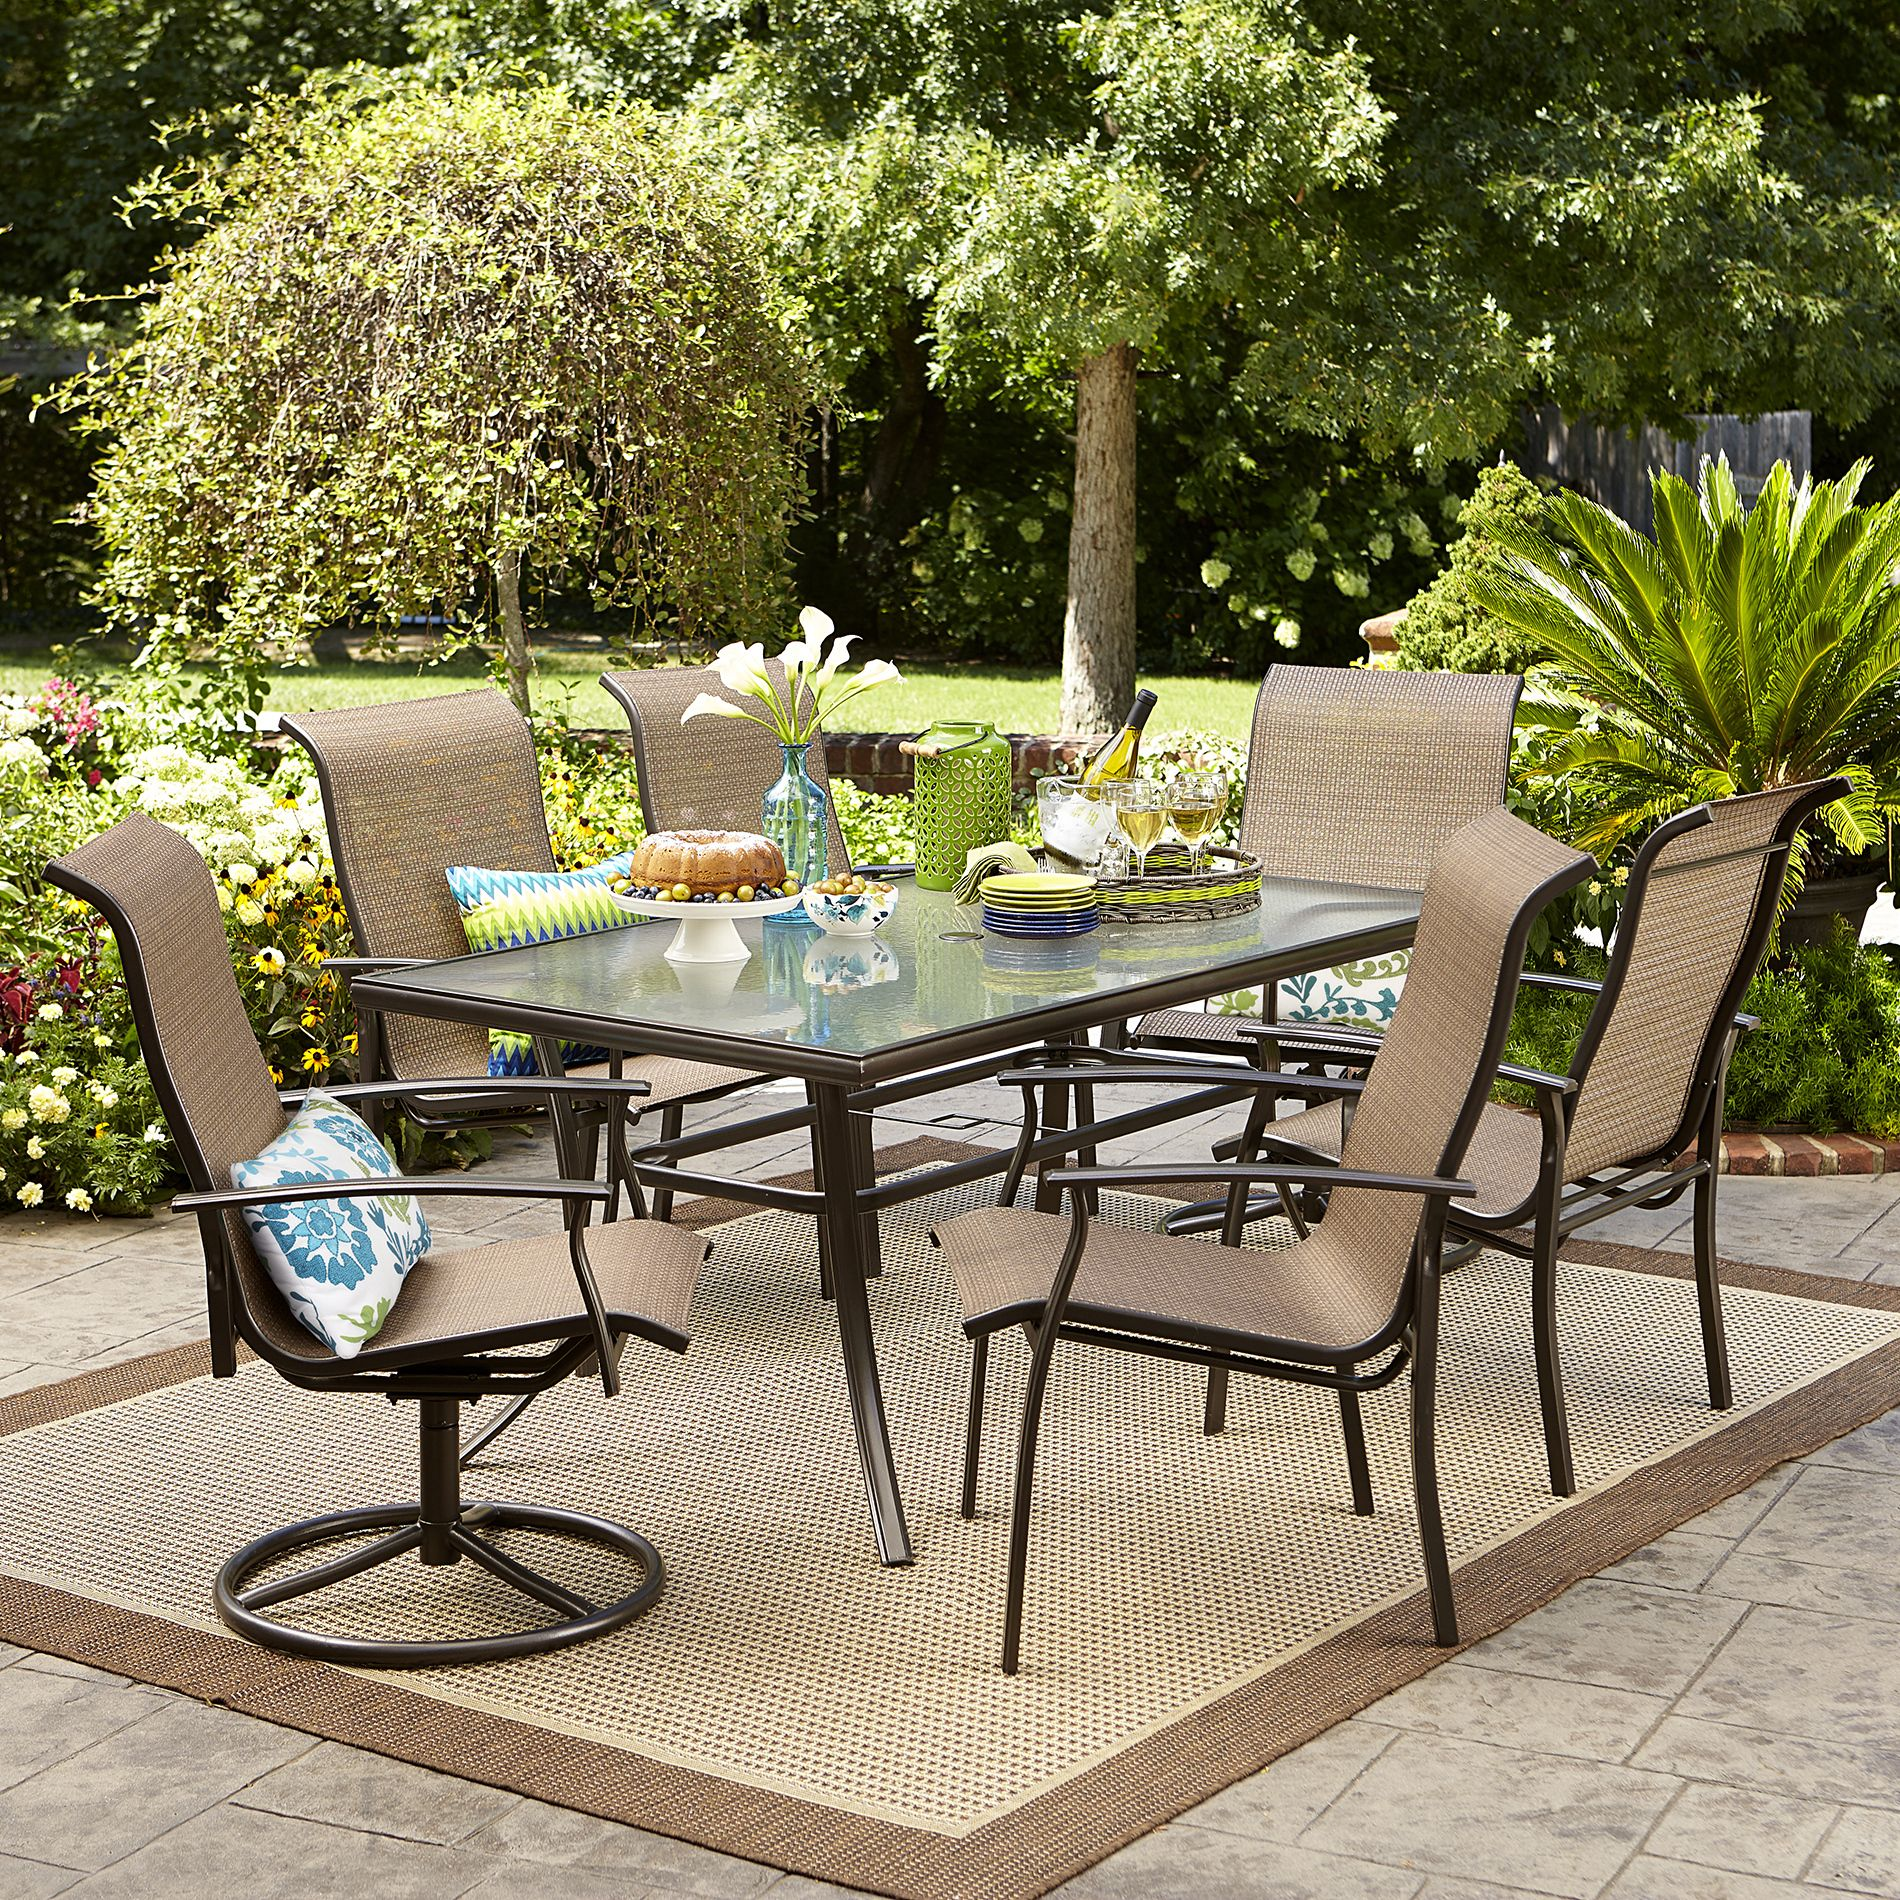 Pin by Annora on home interior Outdoor dining set